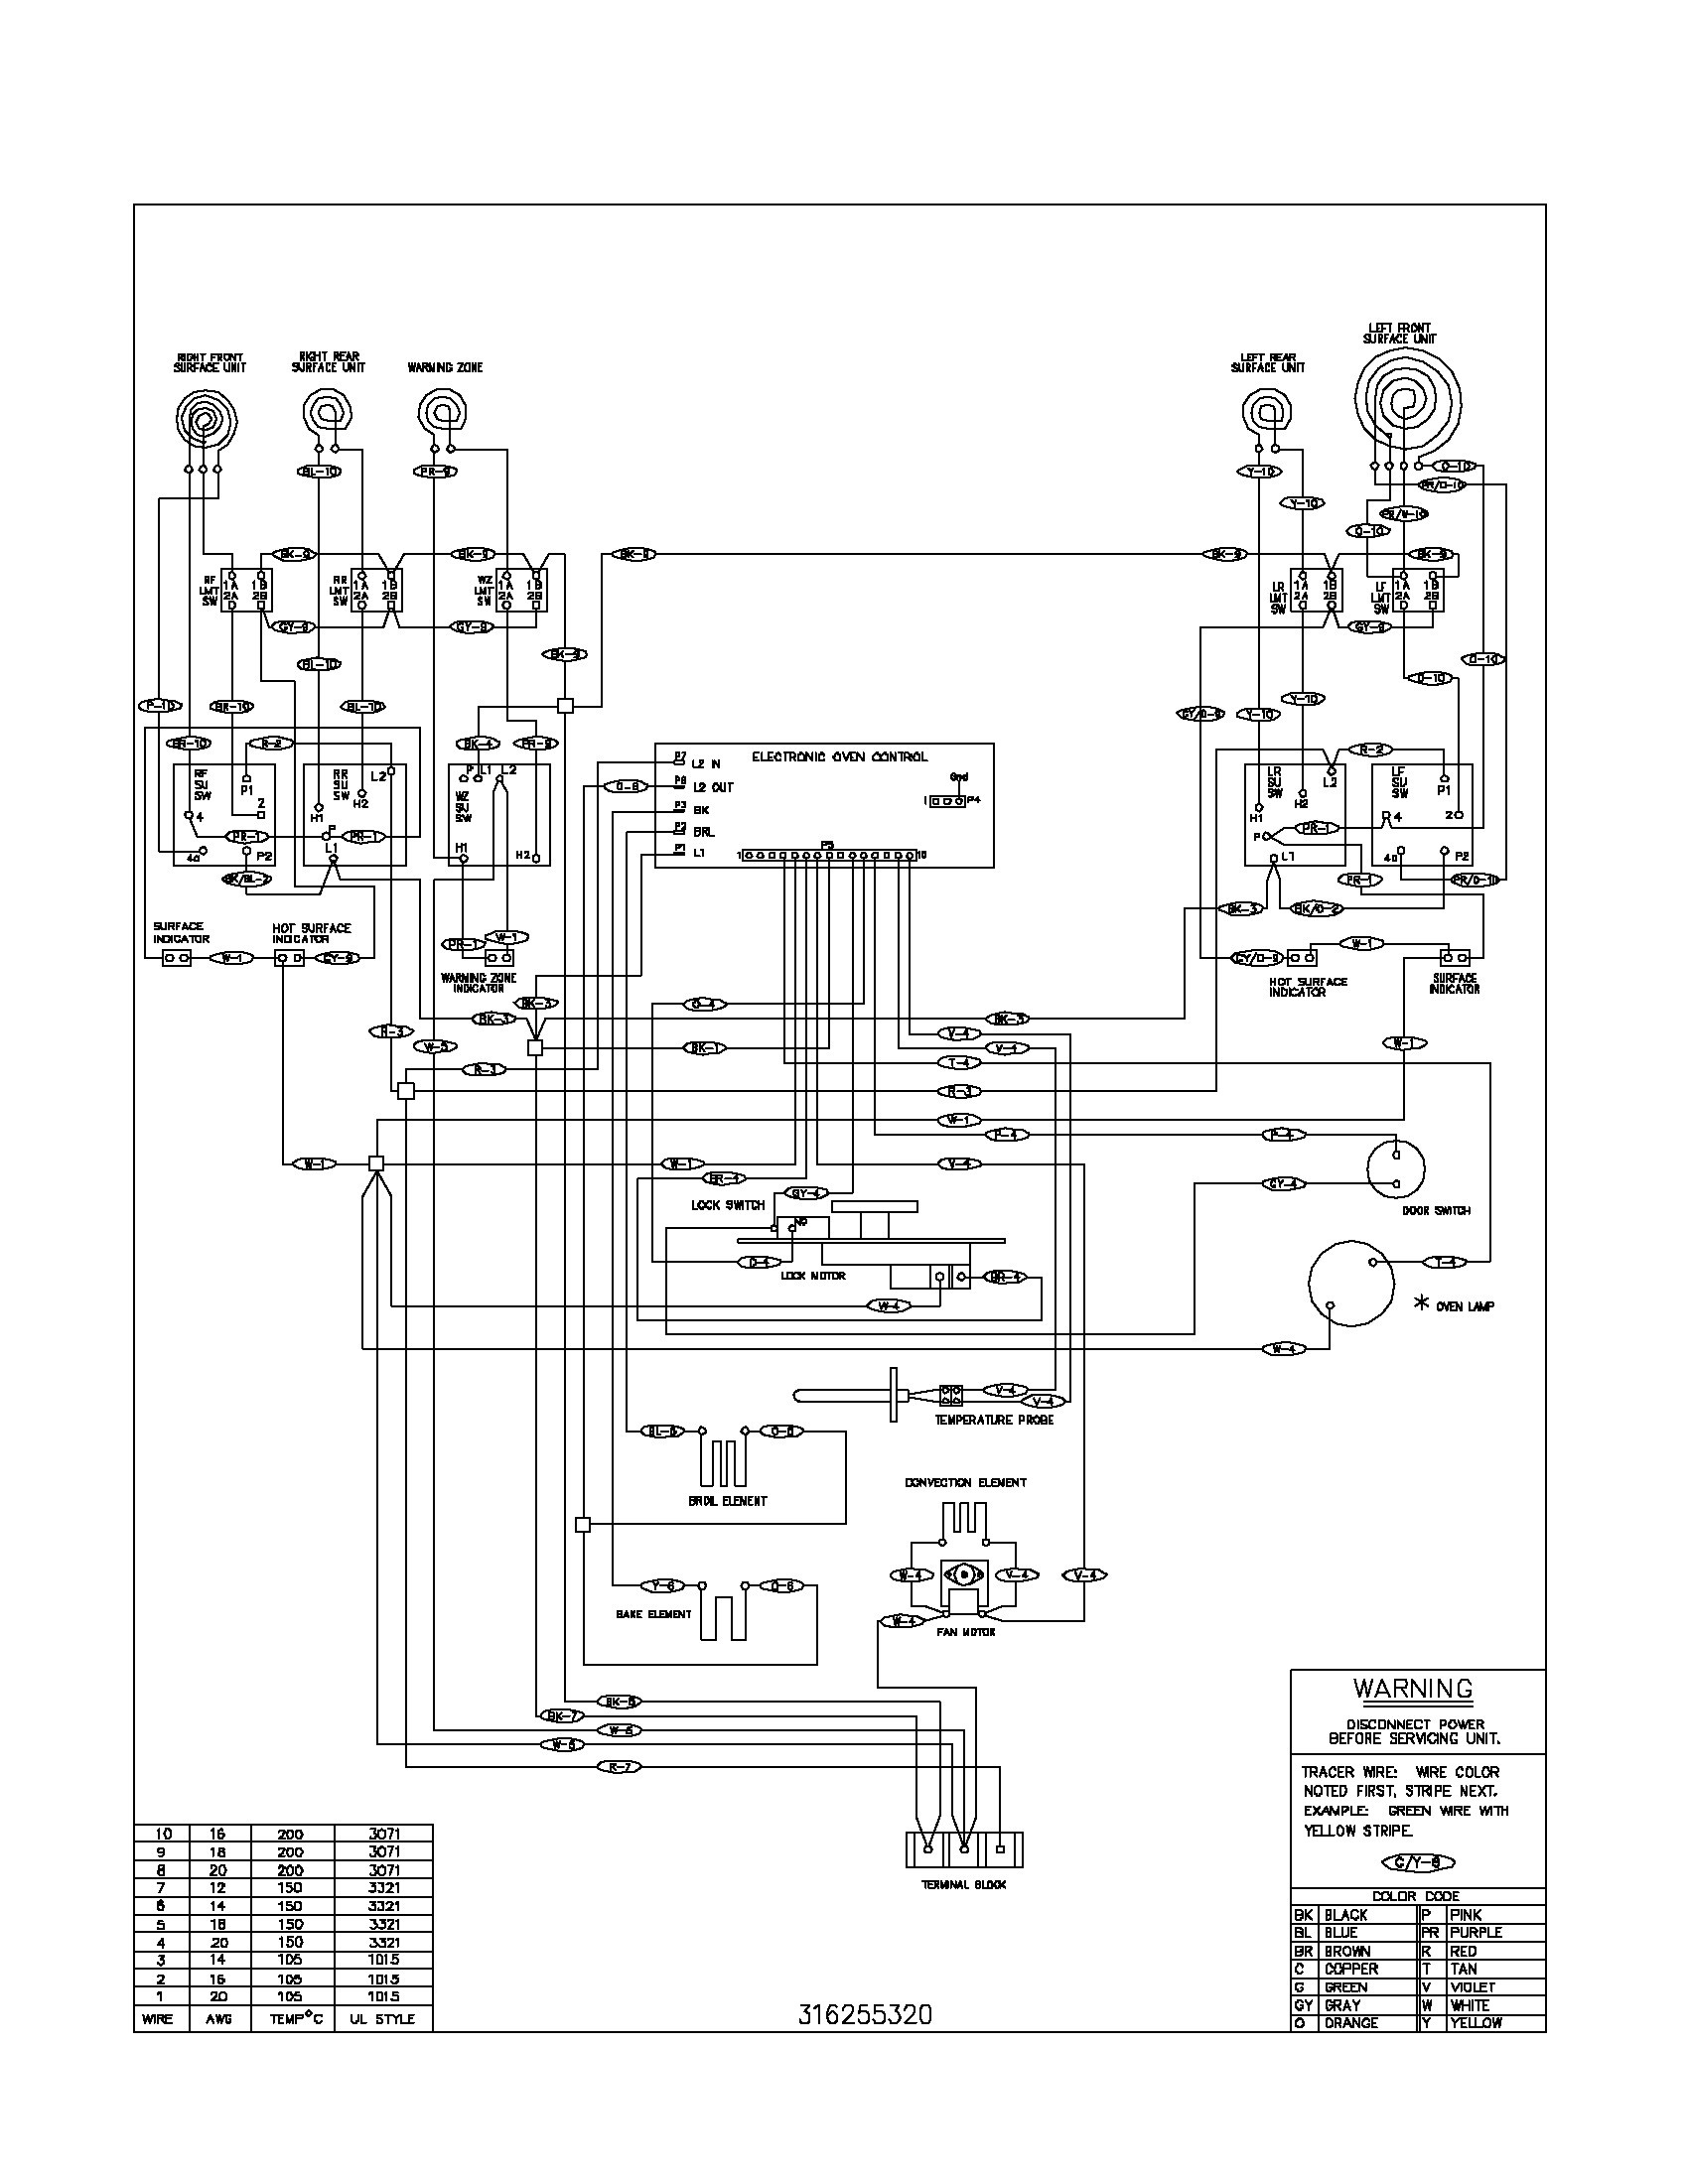 oven wiring diagram 110v wiring schematic diagram 29 Basic Electrical Wiring Diagrams